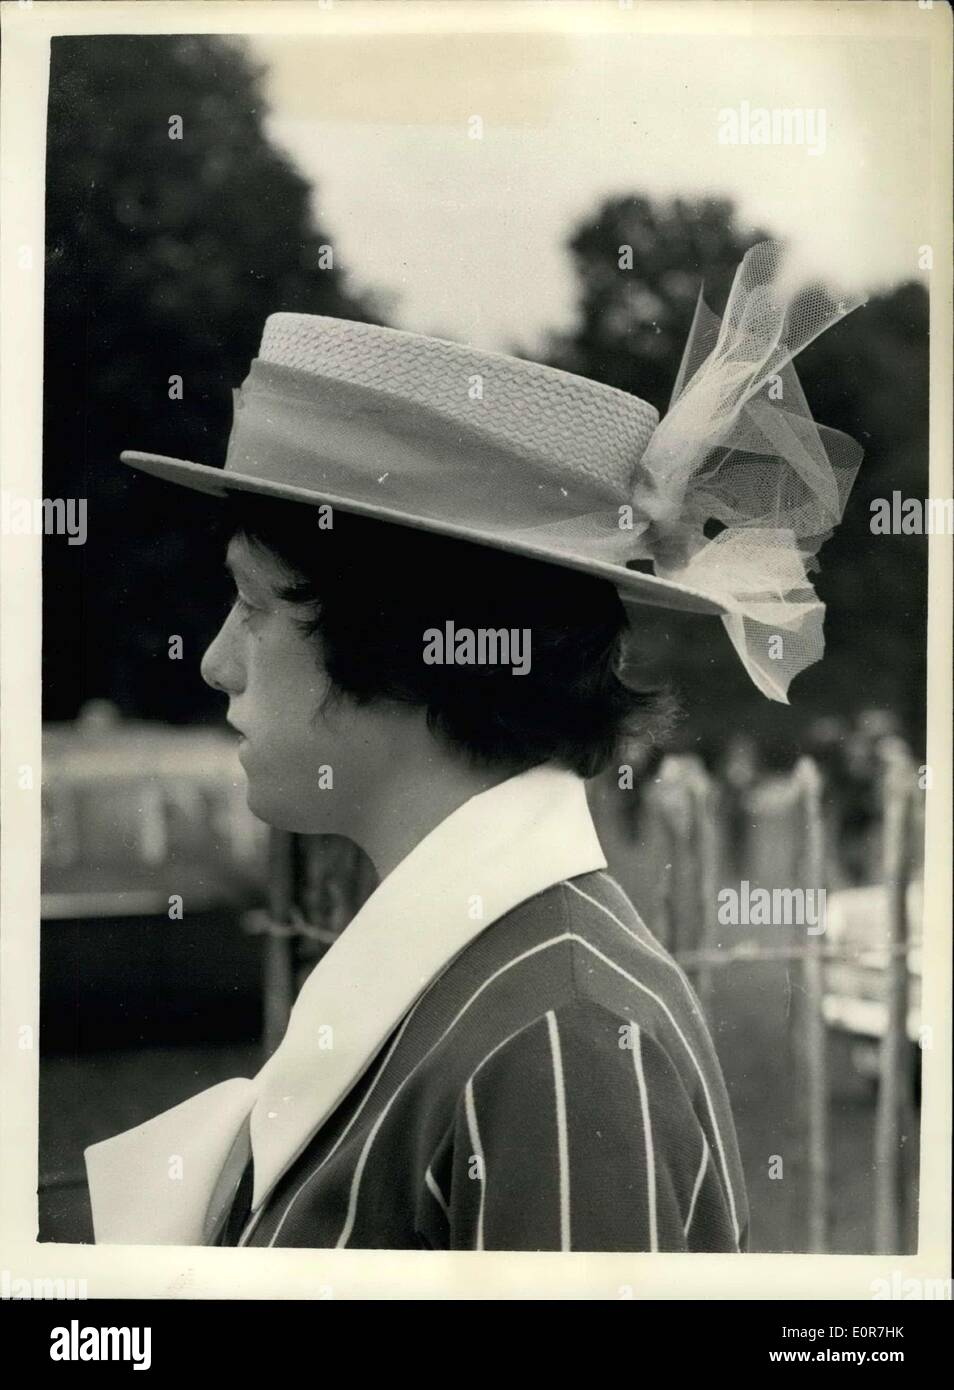 Jul. 03, 1958 - It's bcater day at Henley: photo shows 16-year old Sally Anne Ripley. of farnham royal wearing a straw boater trimmed with blue not - at Henley today, where it appears to be boater fashion day for the ladies - on the second day of the famous regatta. - Stock Image